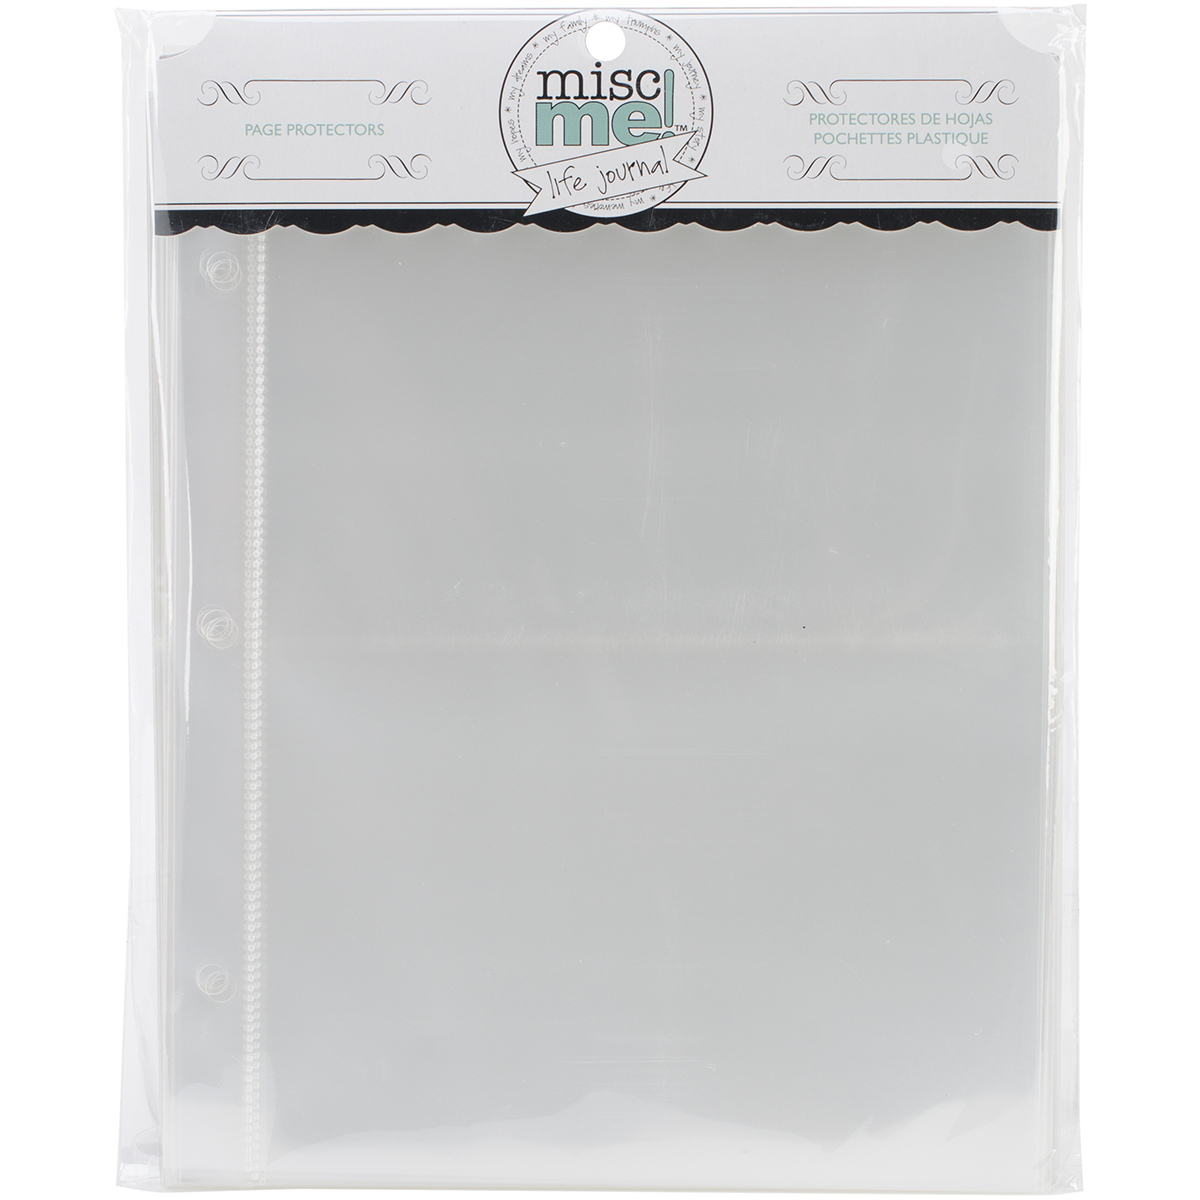 BoBunny Misc Me Page Protectors 8X6 40/Pkg-Variety Pack